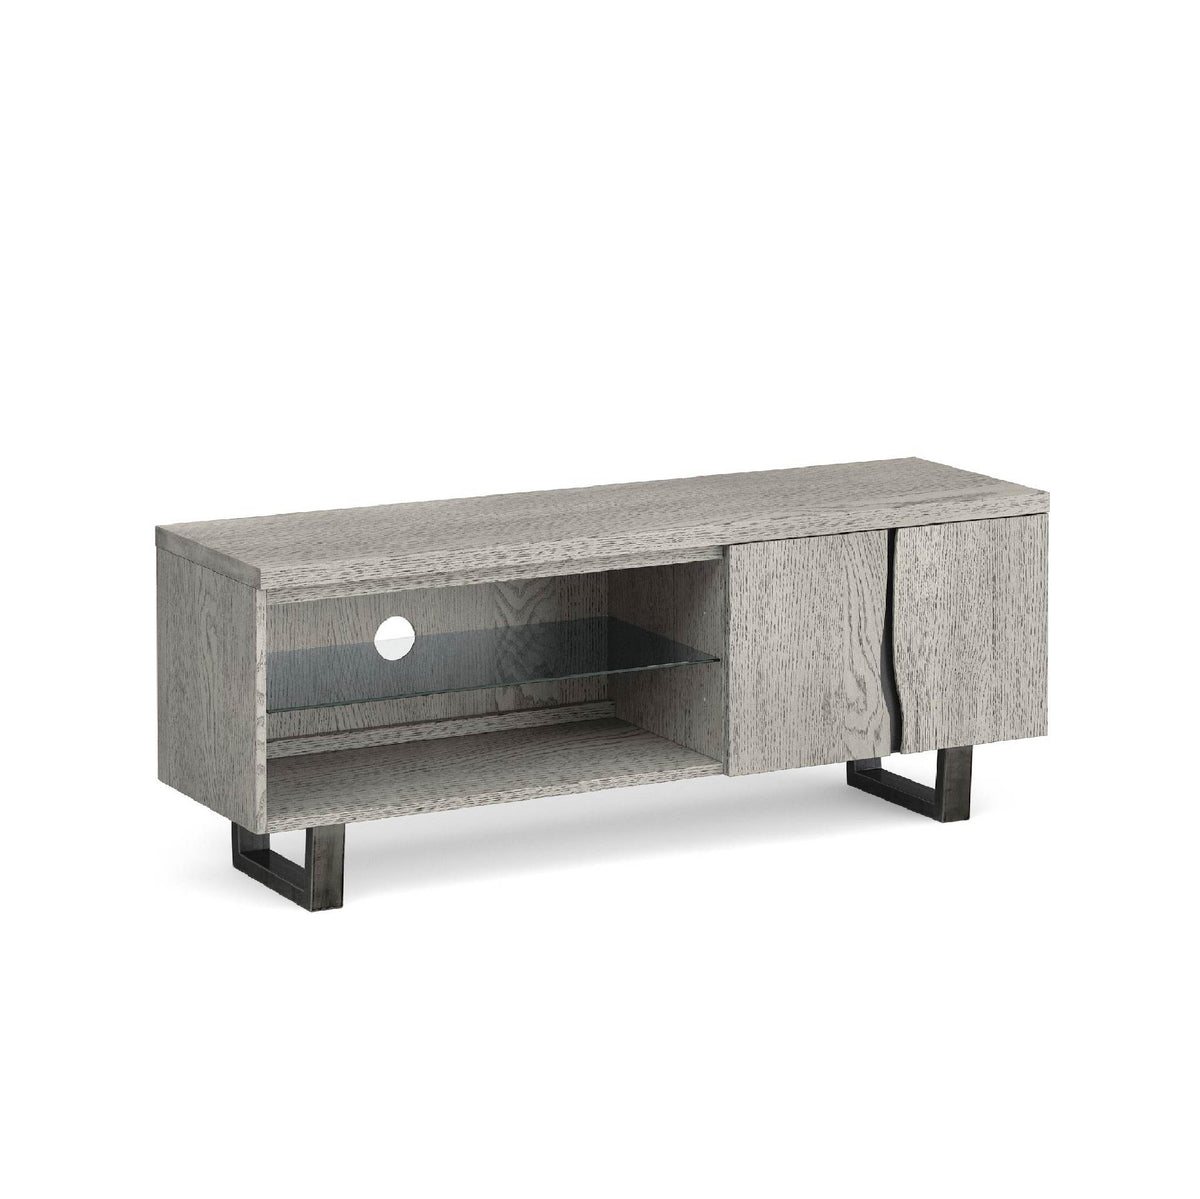 Soho Large 130 cm TV Stand with Glass Shelf by Roseland Furniture